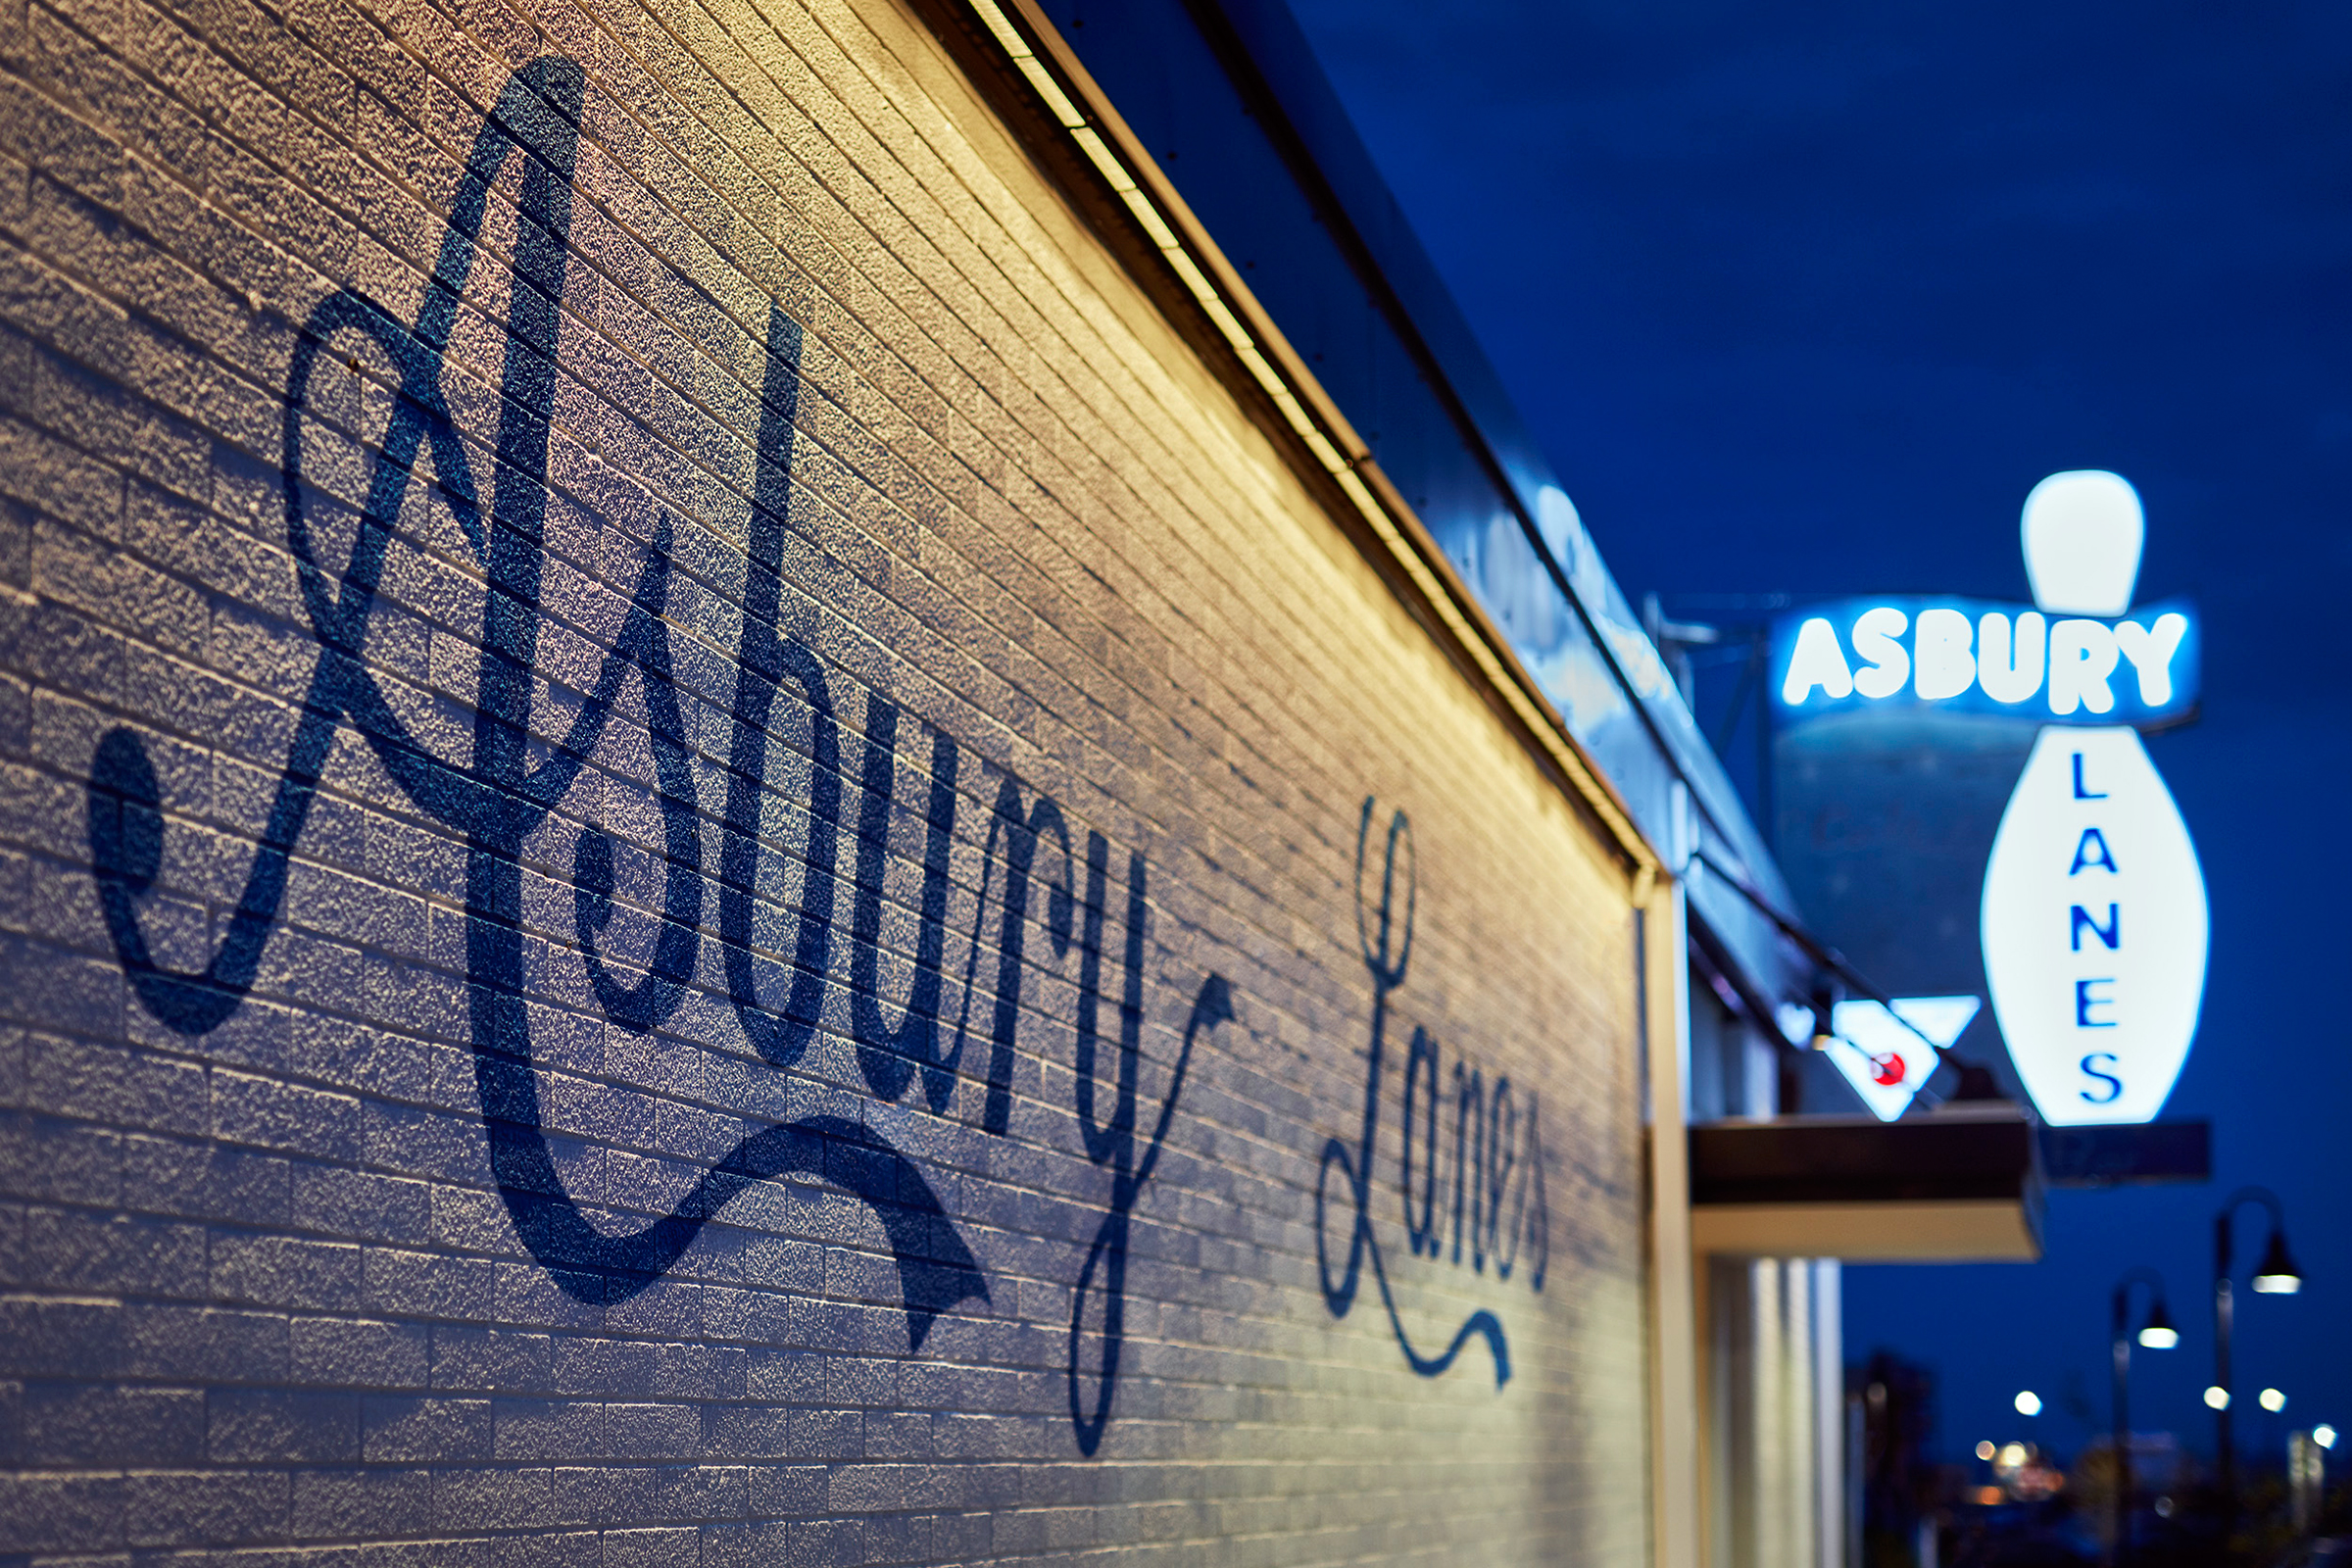 Asbury Lanes Opens for Summer With Snail Mail, Meat Puppets